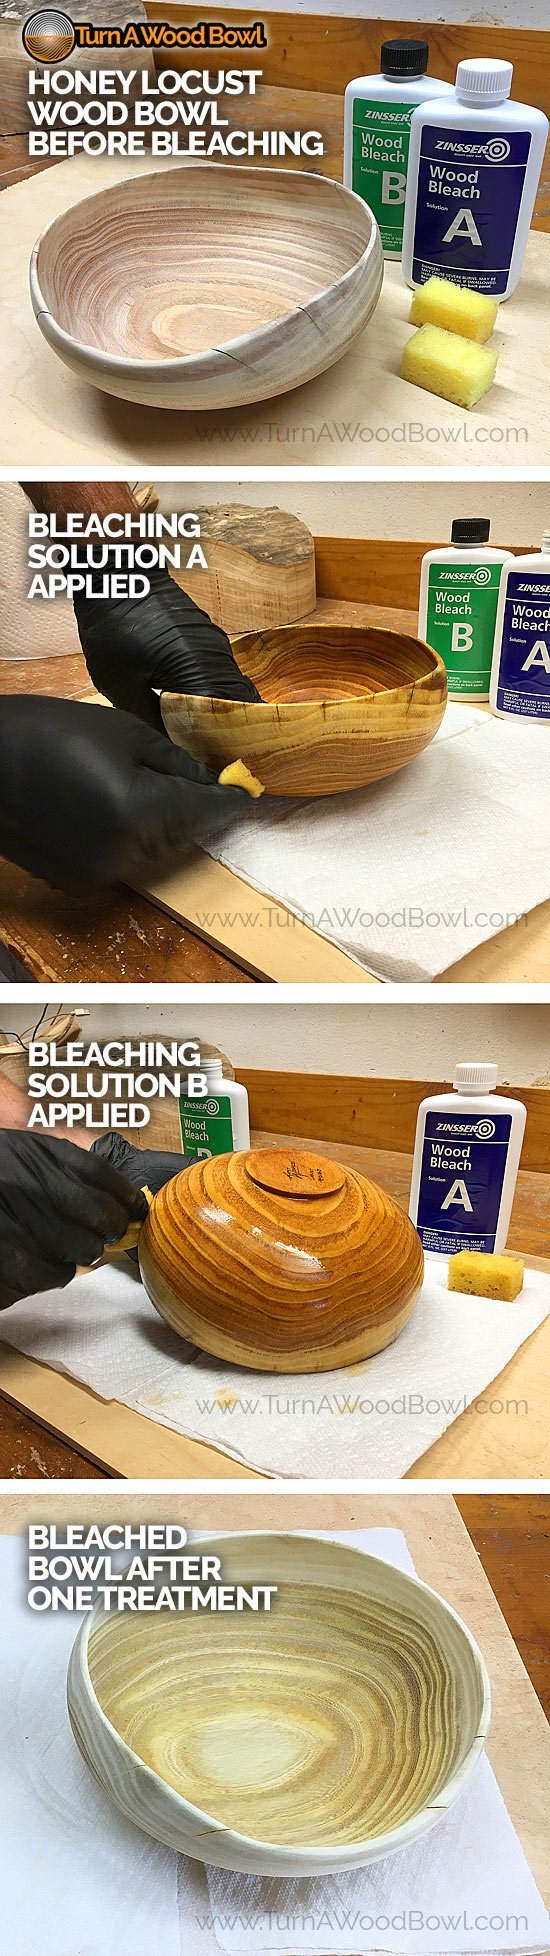 Bleaching Wood Bowl Two Part Process Images Step-By-Step